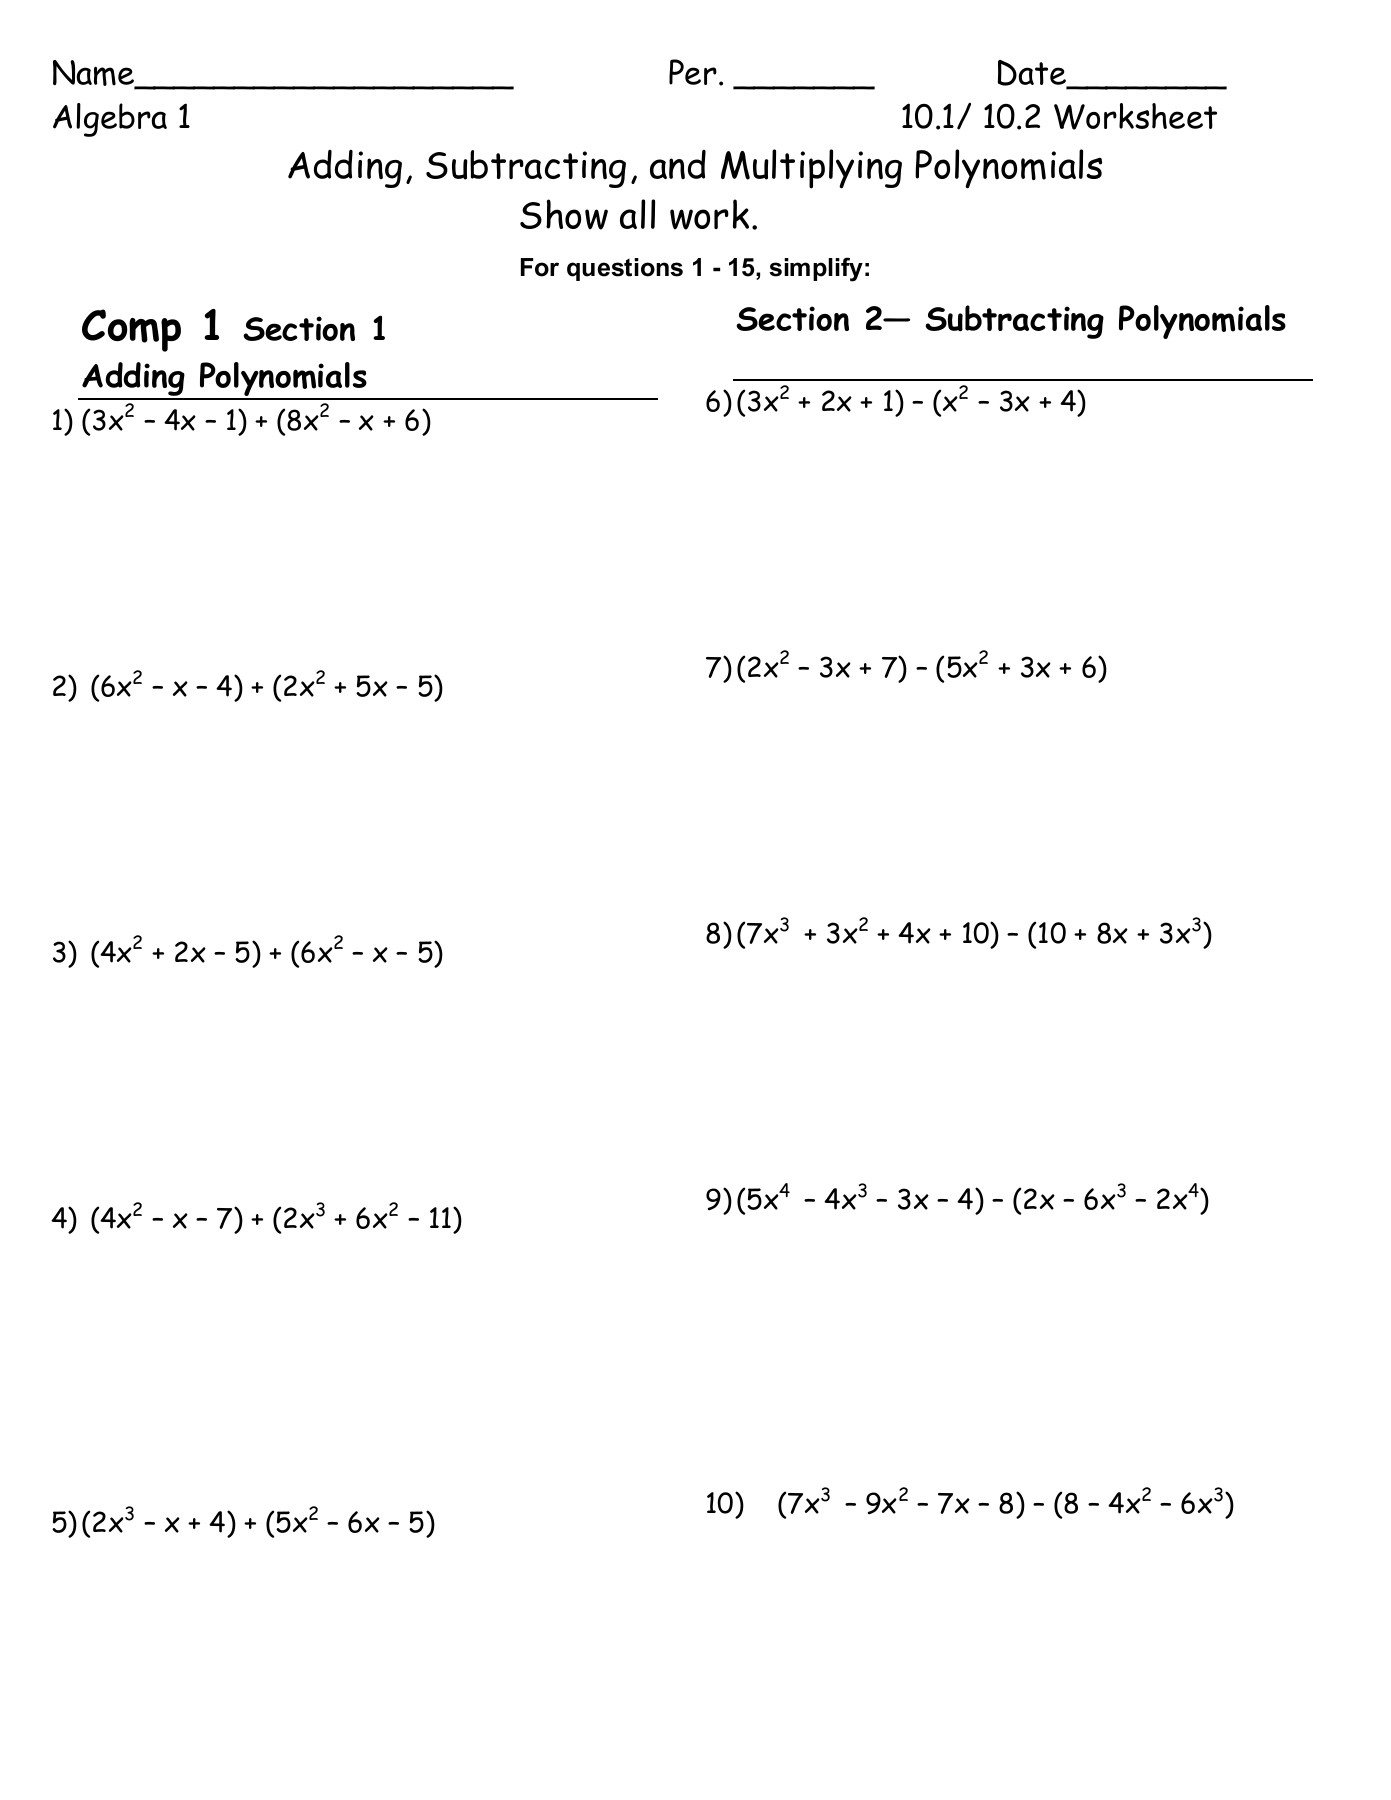 Worksheet Ideas Page 447: 51 Multiplying Polynomials intended for Worksheets About Multiplication Of Polynomials